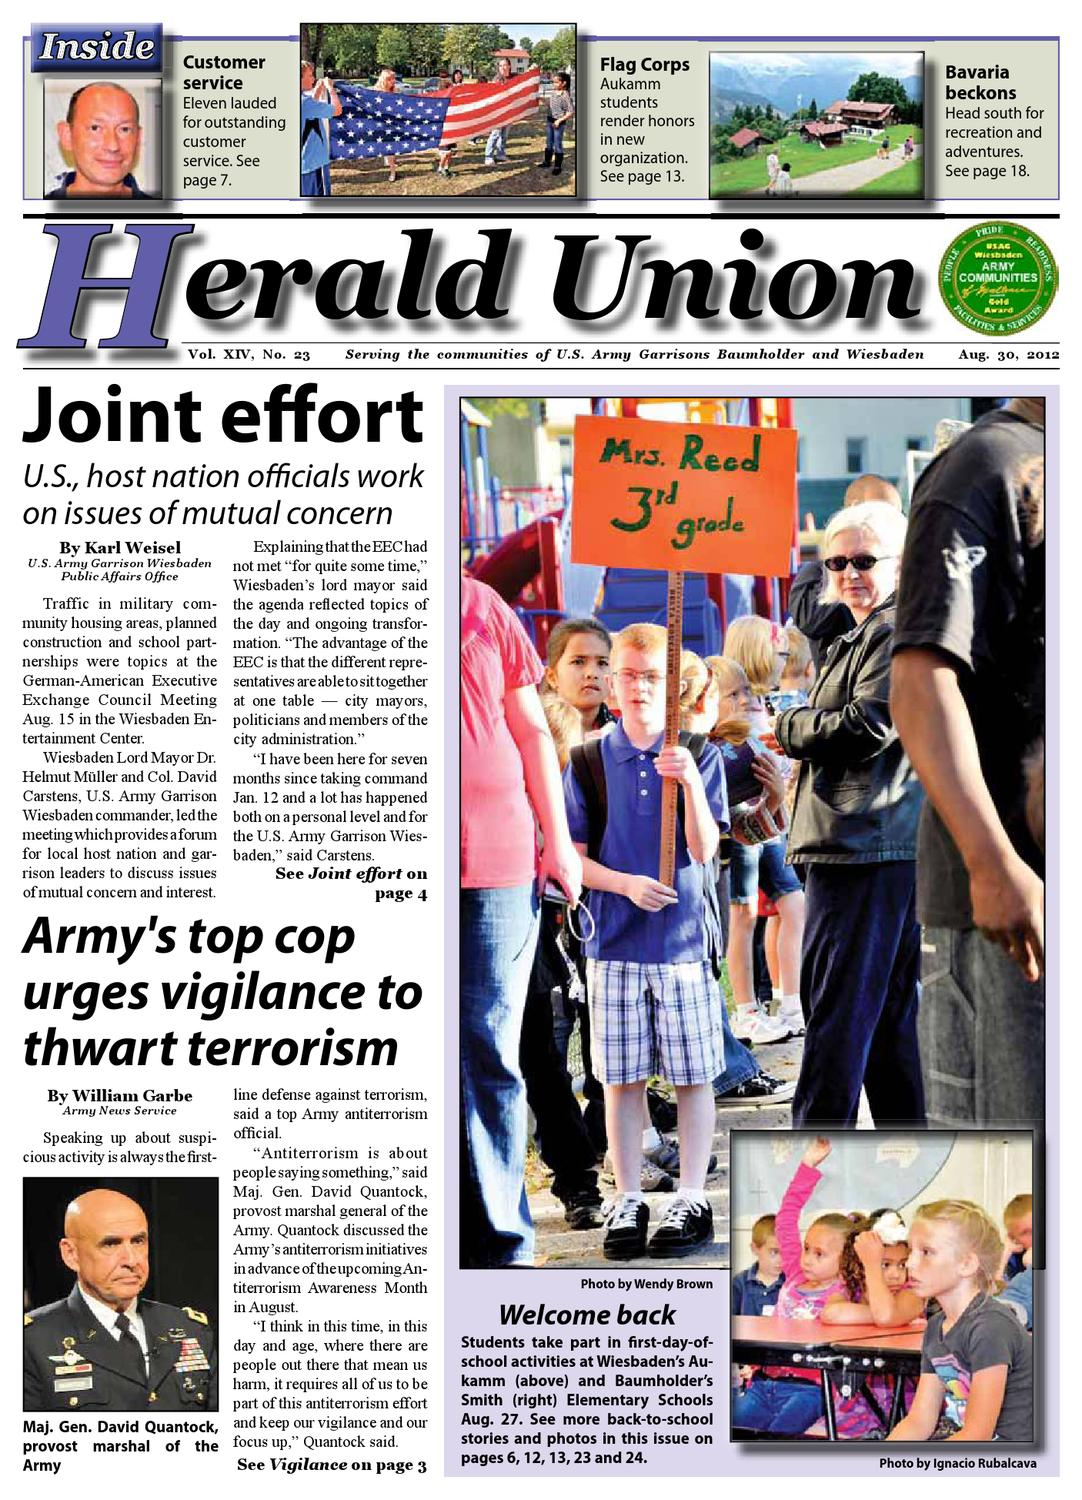 Ikea Freiburg Jobs Aug 30 2012 Herald Union By Advantipro Gmbh Issuu